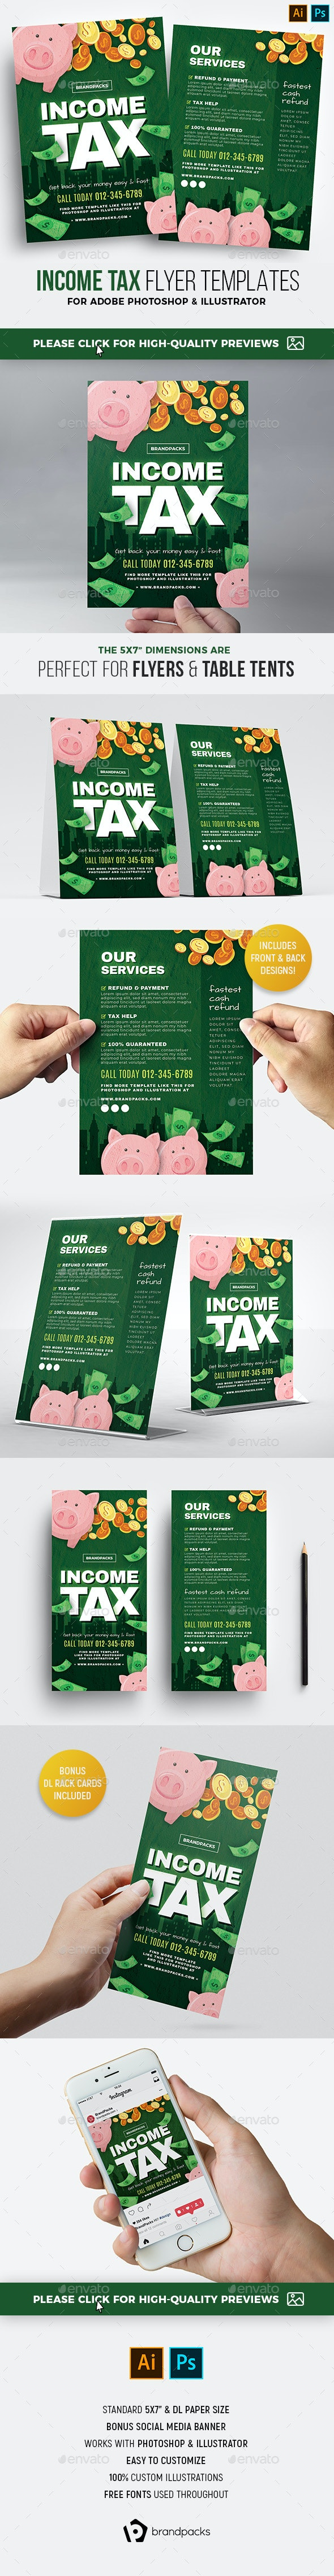 Income Tax Flyer - Corporate Flyers